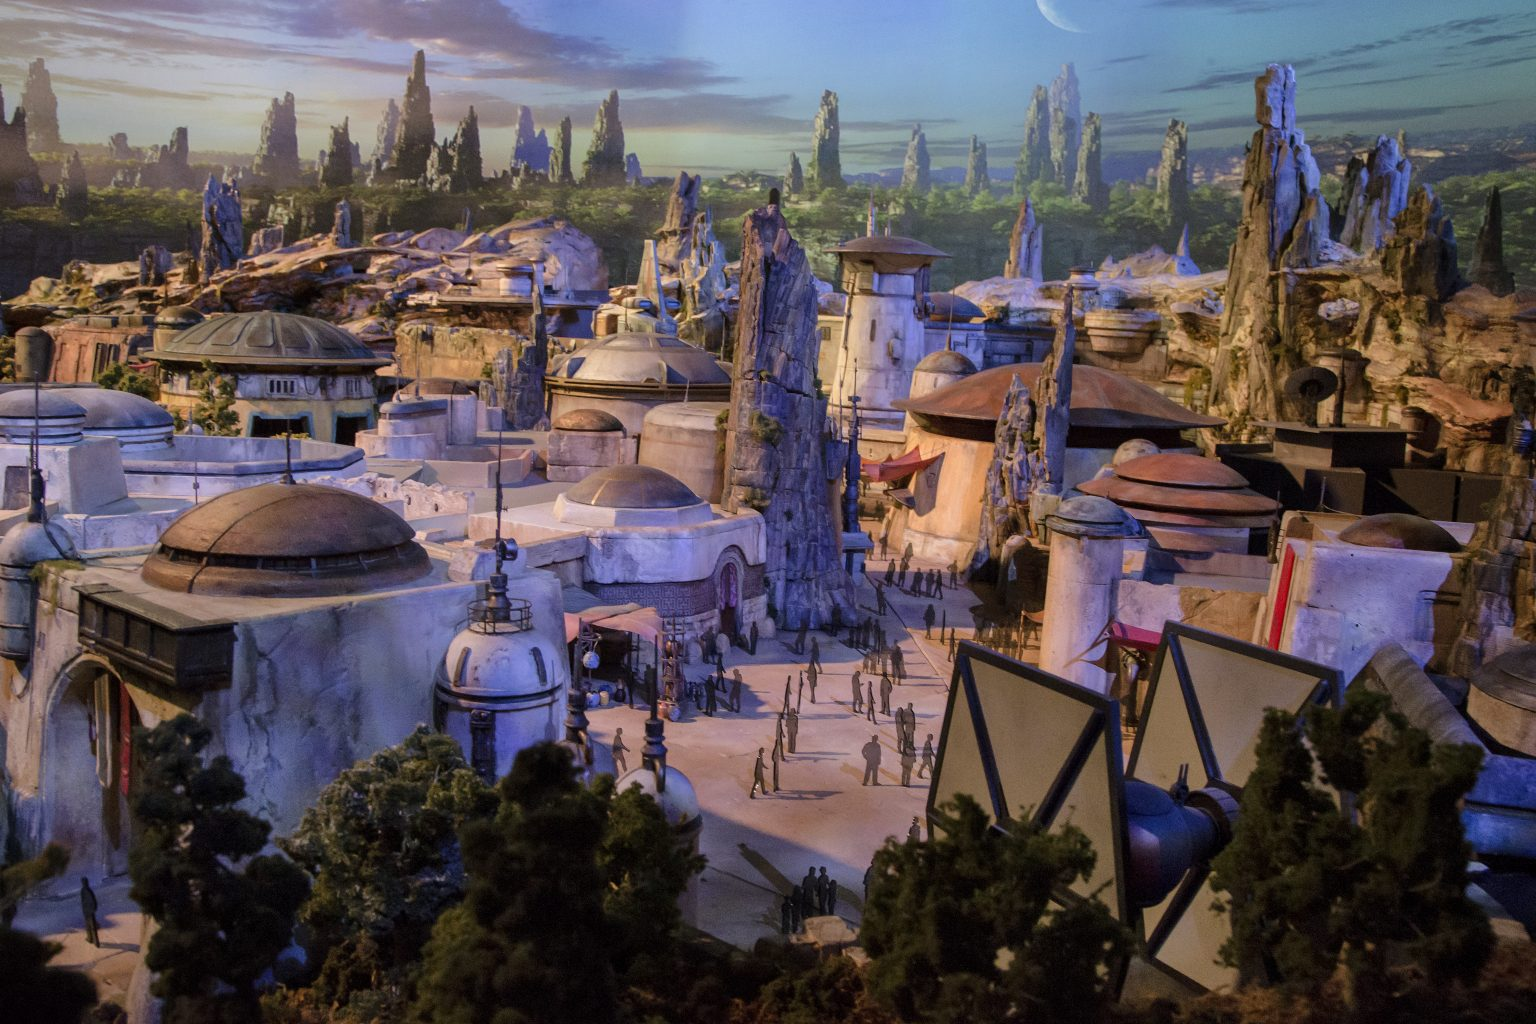 Guests will be able to shop the marketplace at Disney Star Wars Land starting May 31st, 2019.